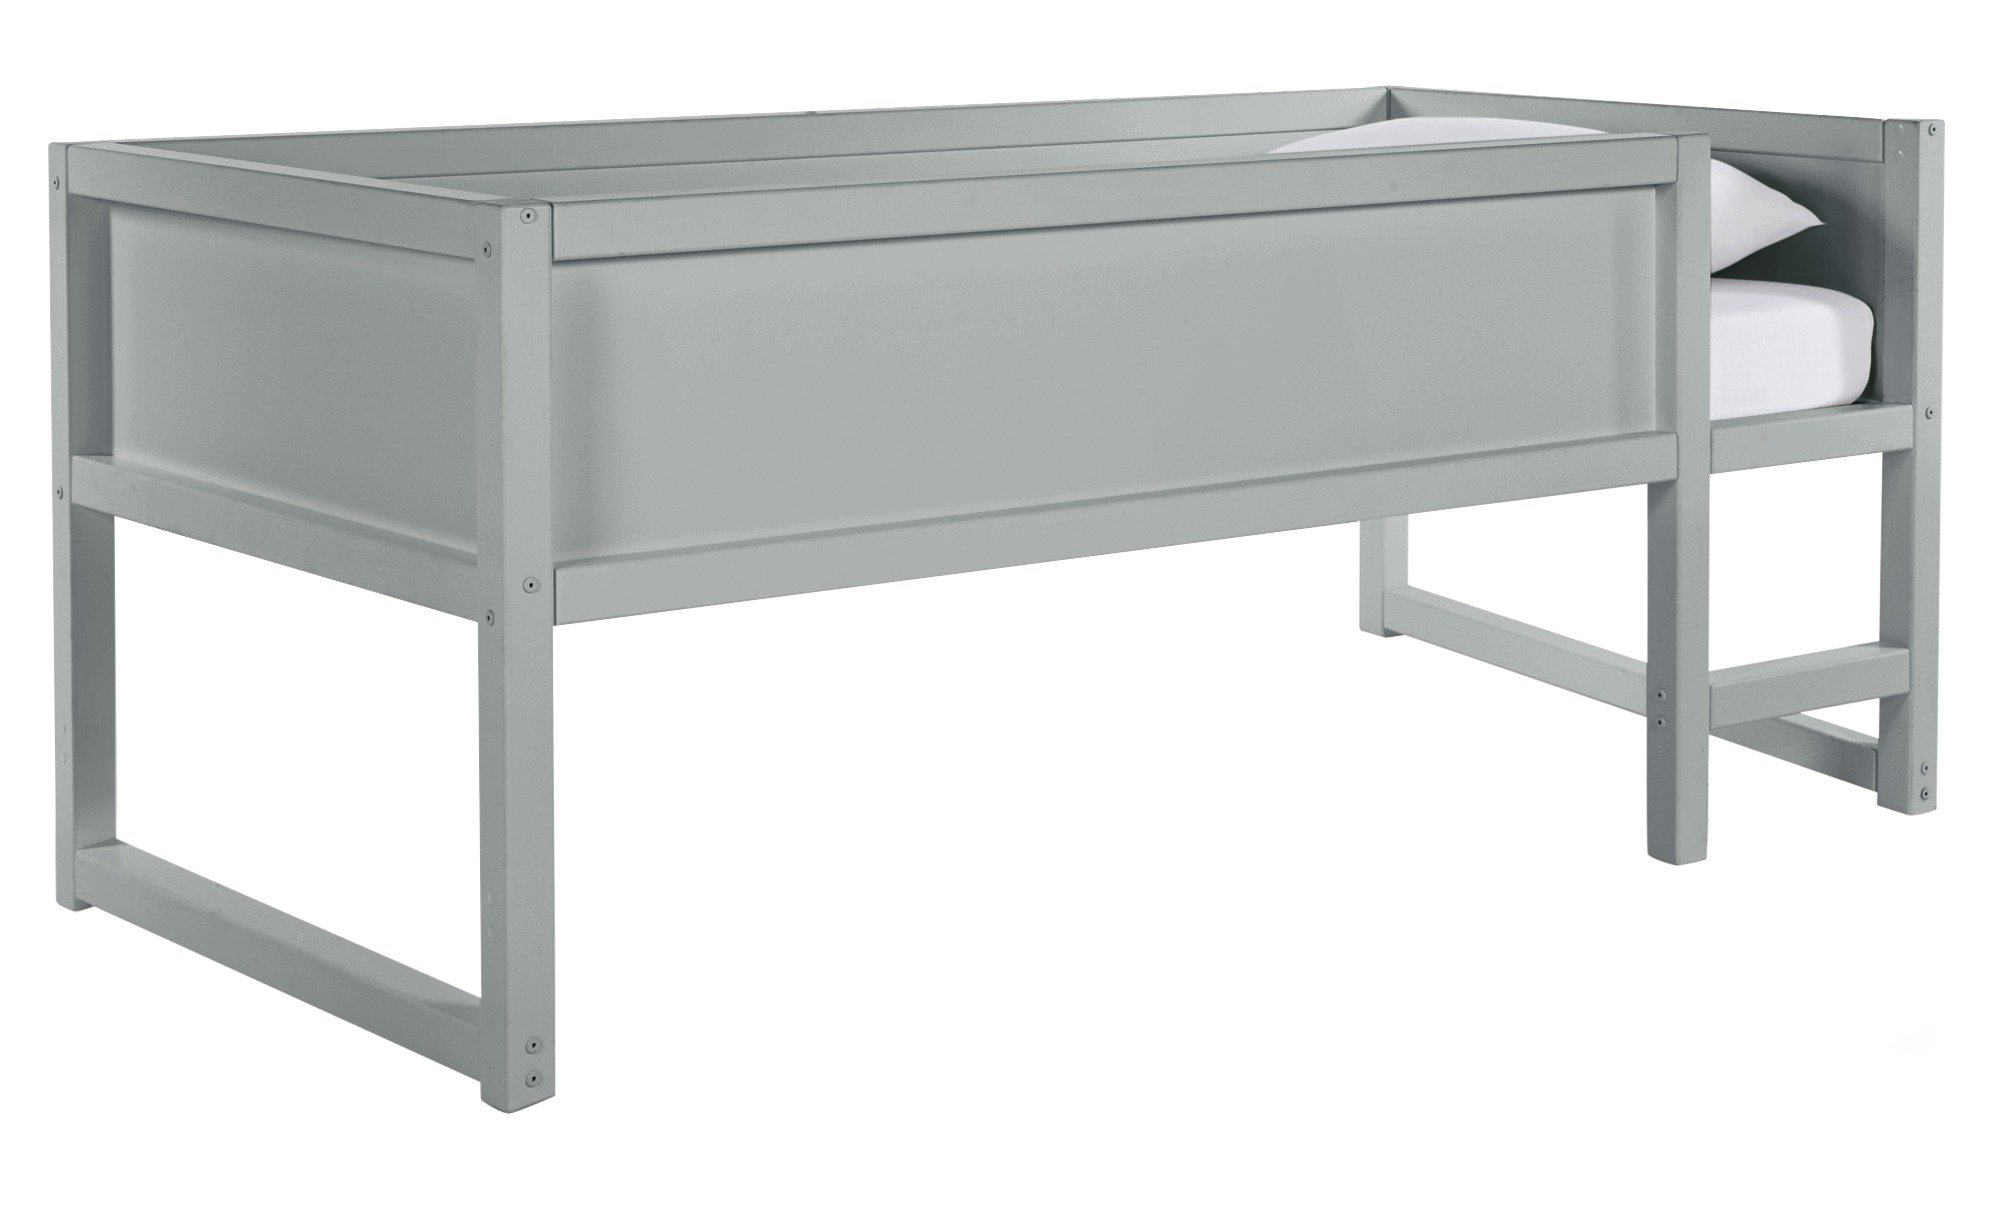 Collection Tokyo Heavy Duty Low Mid Sleeper Bed Frame - Grey